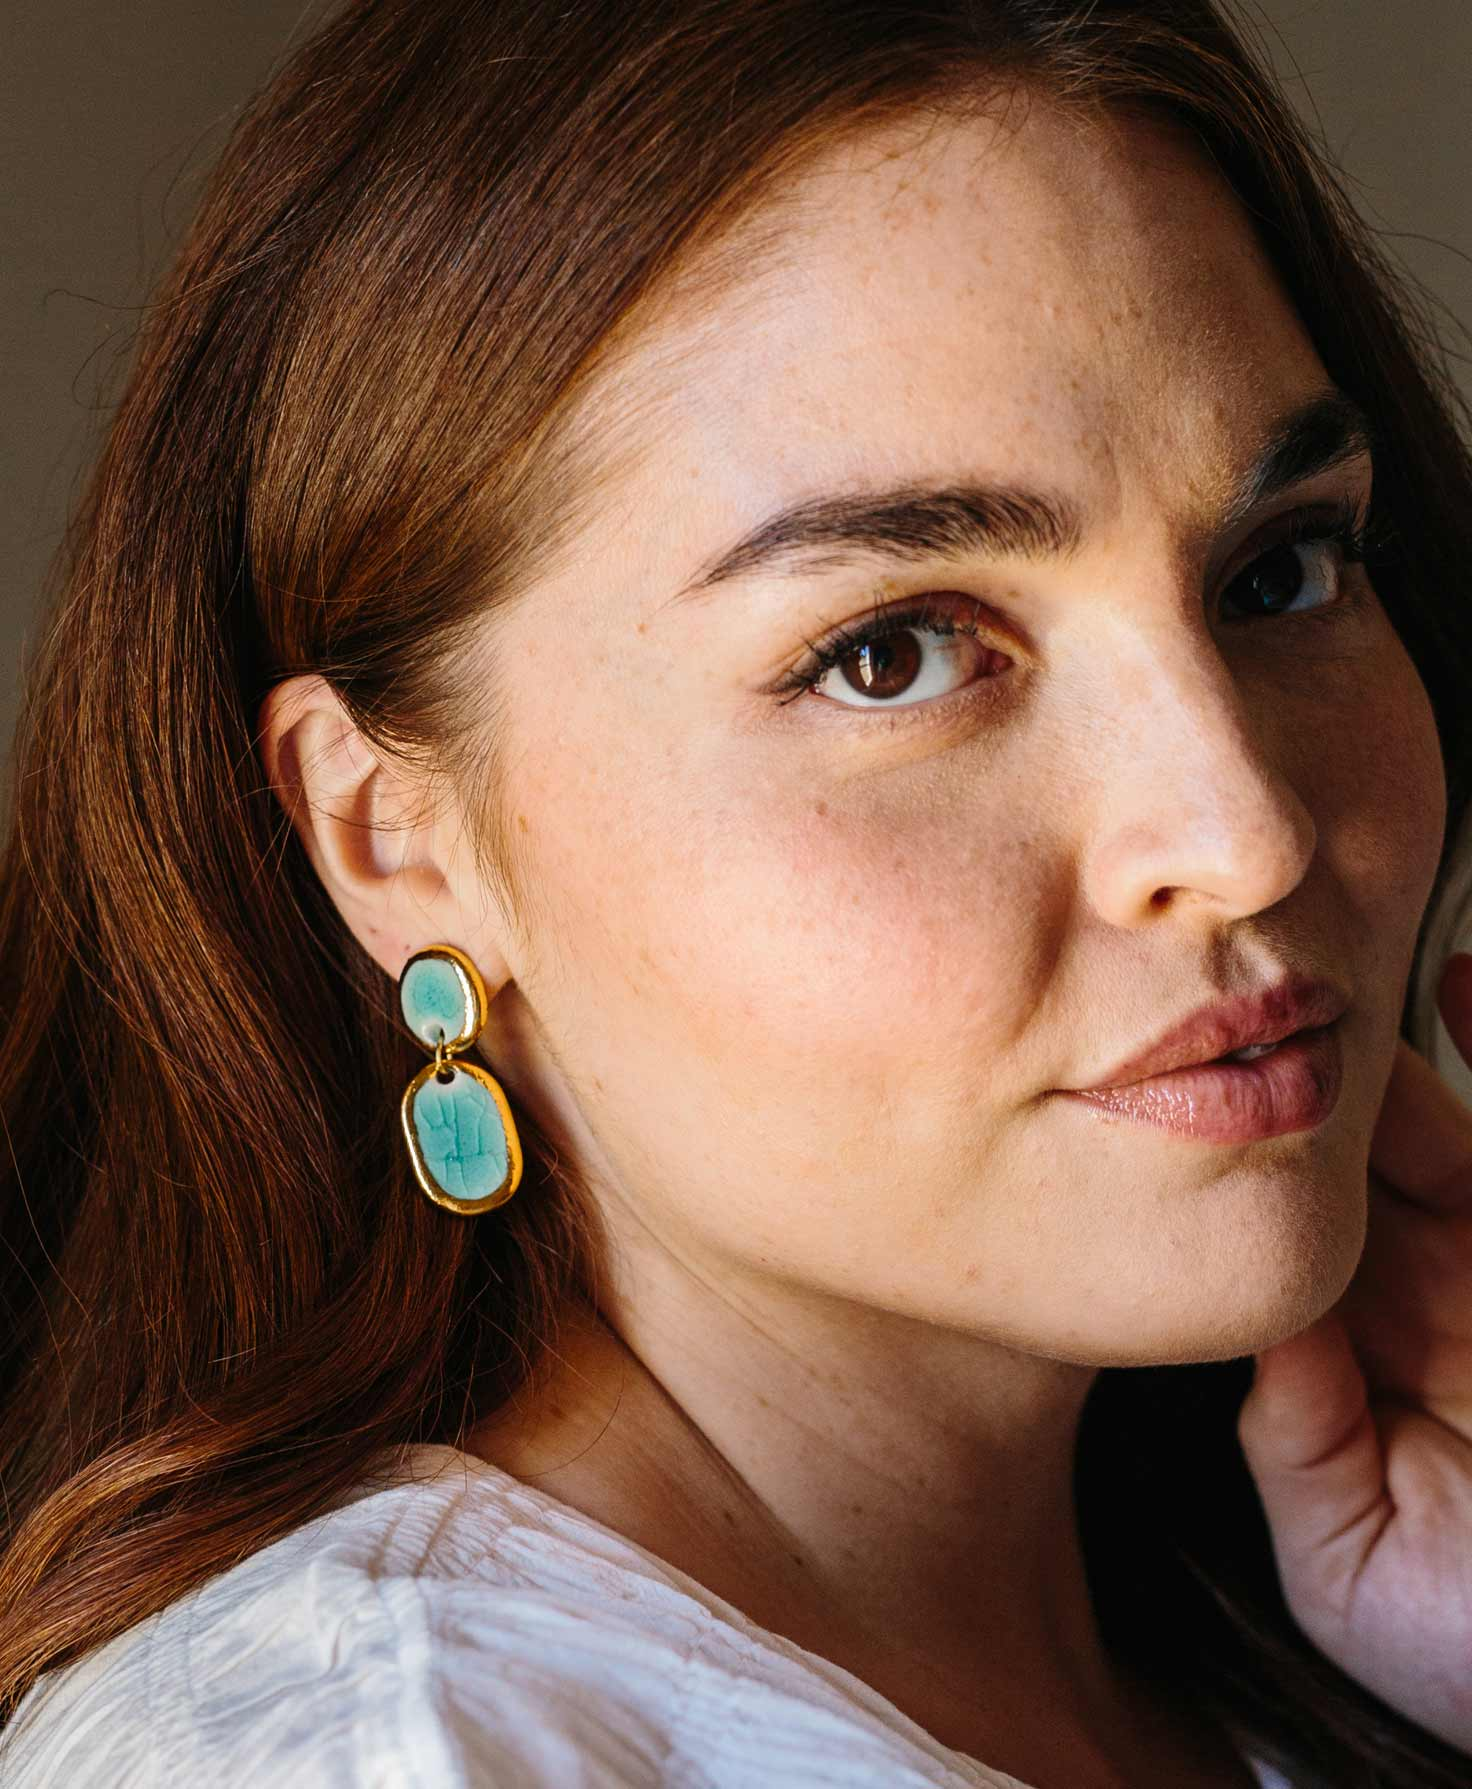 A model wears the Union Earrings paired with a classic white blouse. The porcelain glaze and gold luster on the earrings shine in the light.